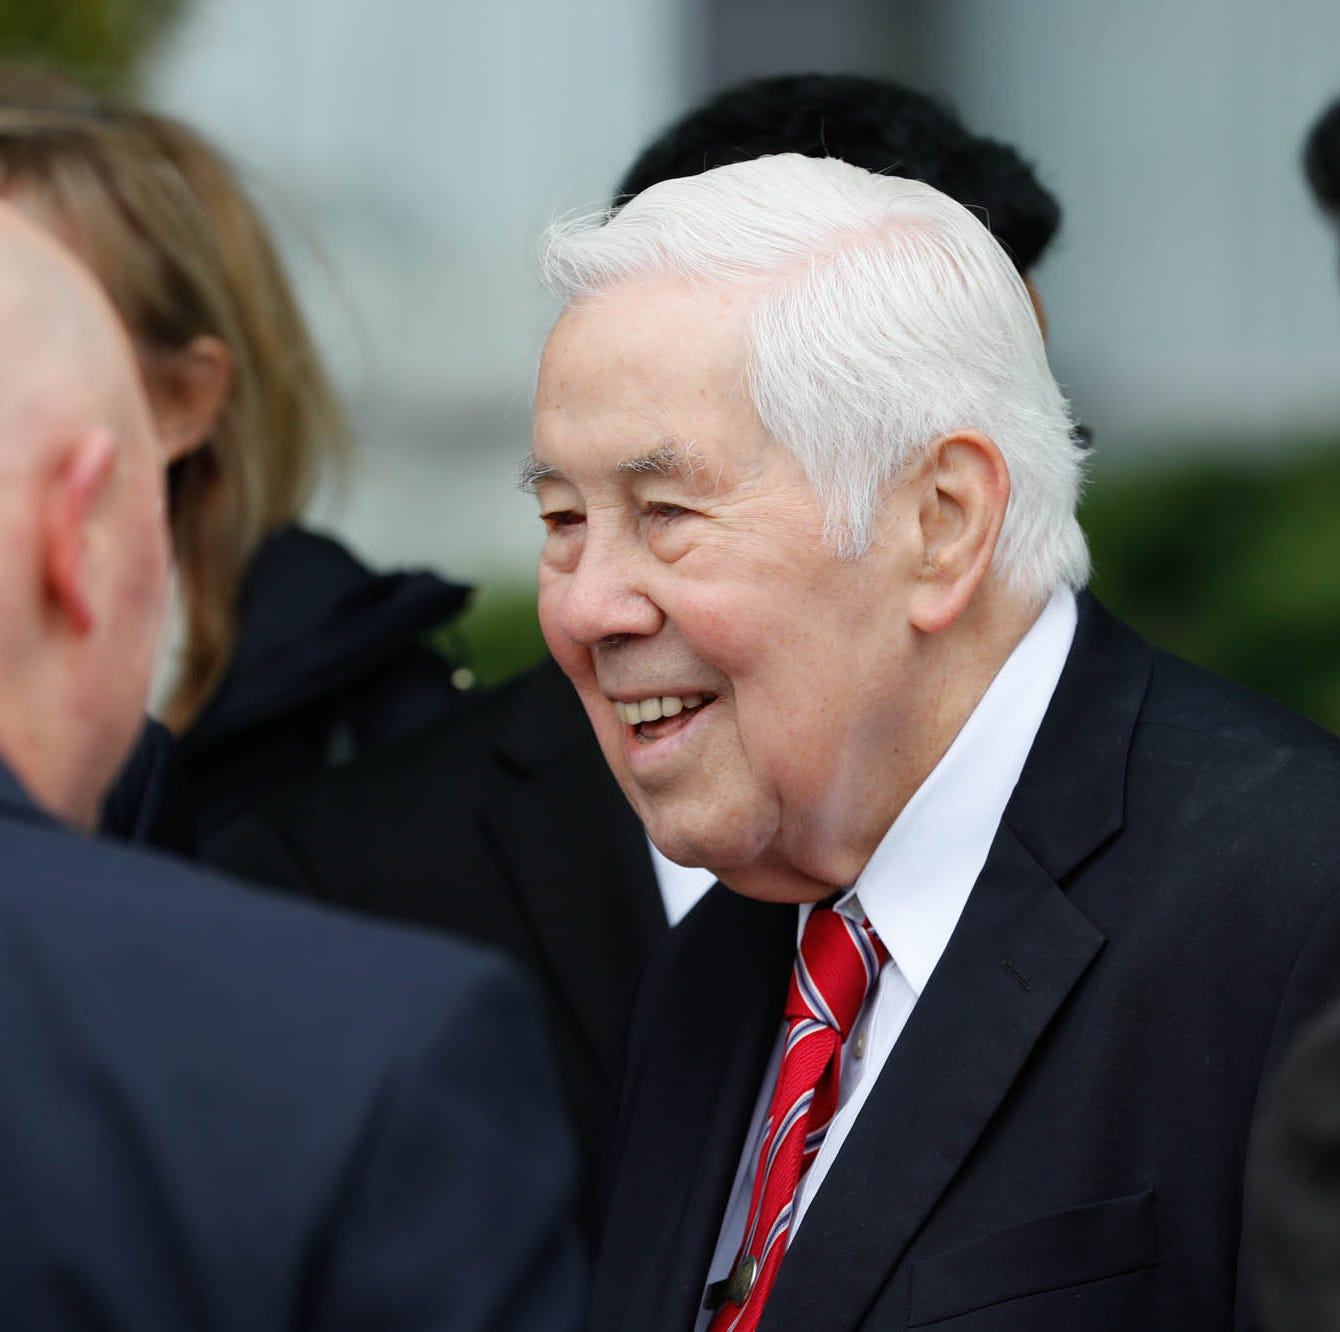 Former Senator Richard Lugar greets guests during the reopening and dedication of Richard G. Lugar Plaza at the City-County Building in Indianapolis on Thursday, Oct. 10, 2018.